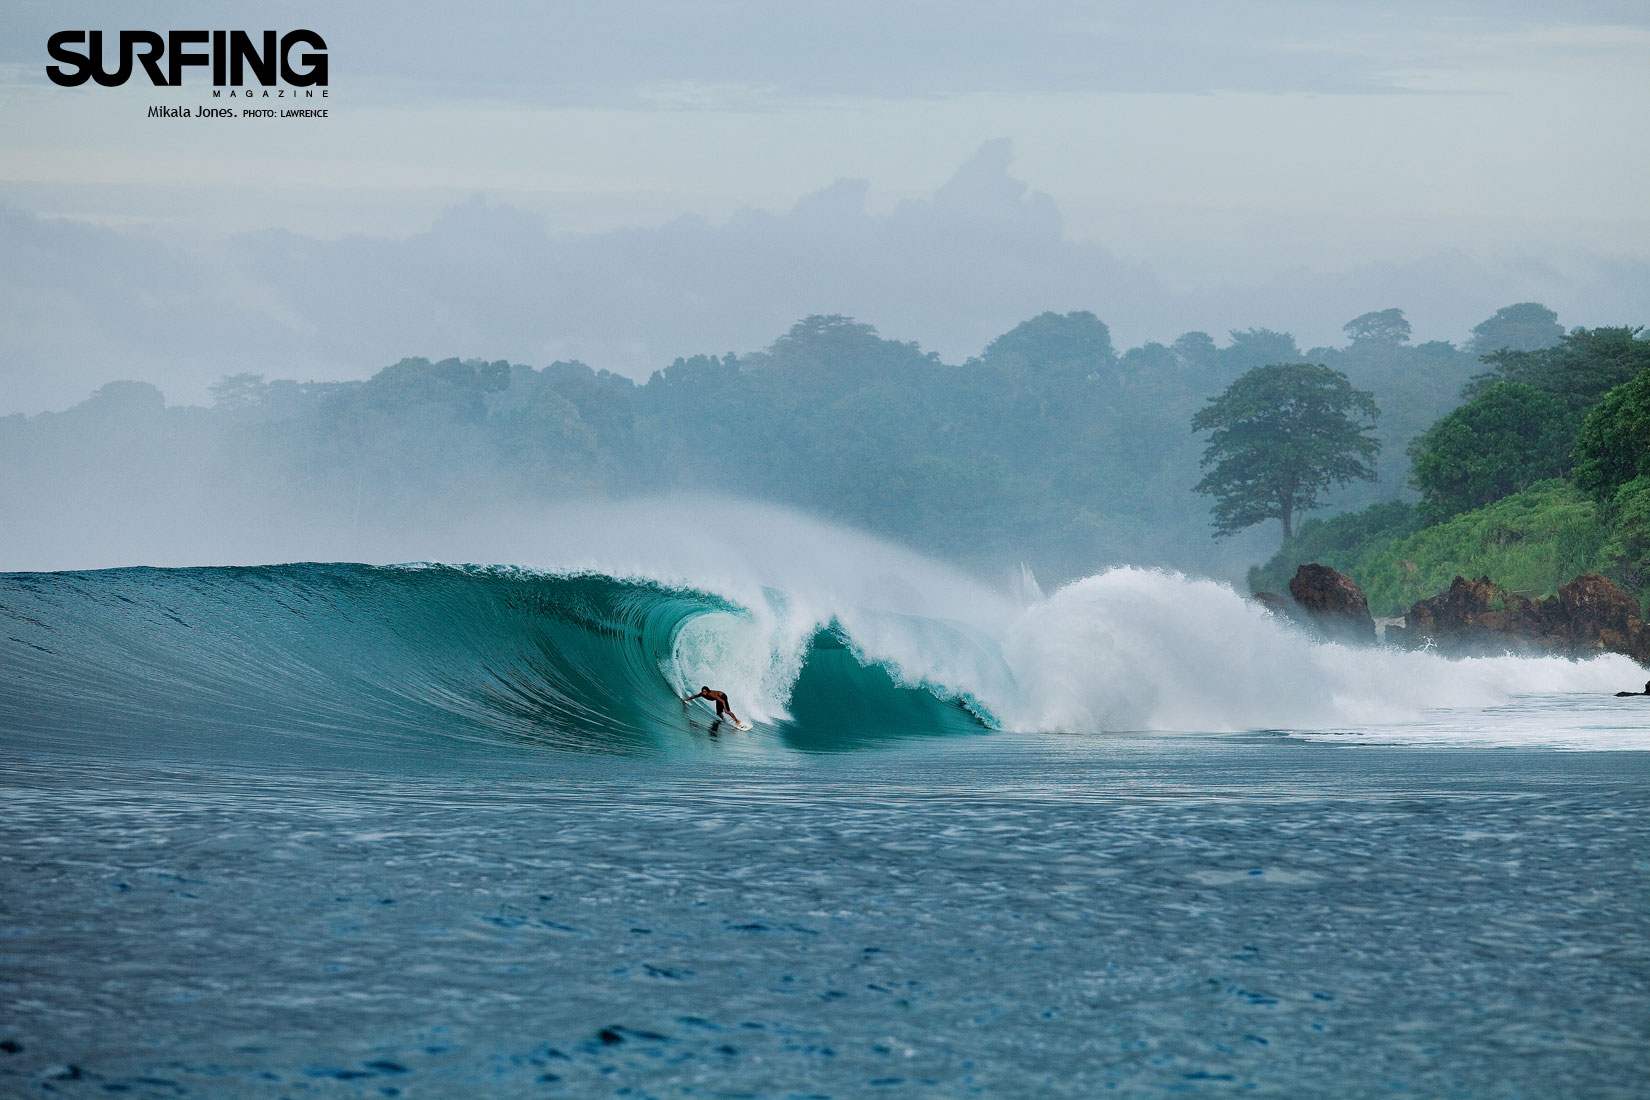 January 2011 Issue Wallpaper SURFING Magazine 1650x1100